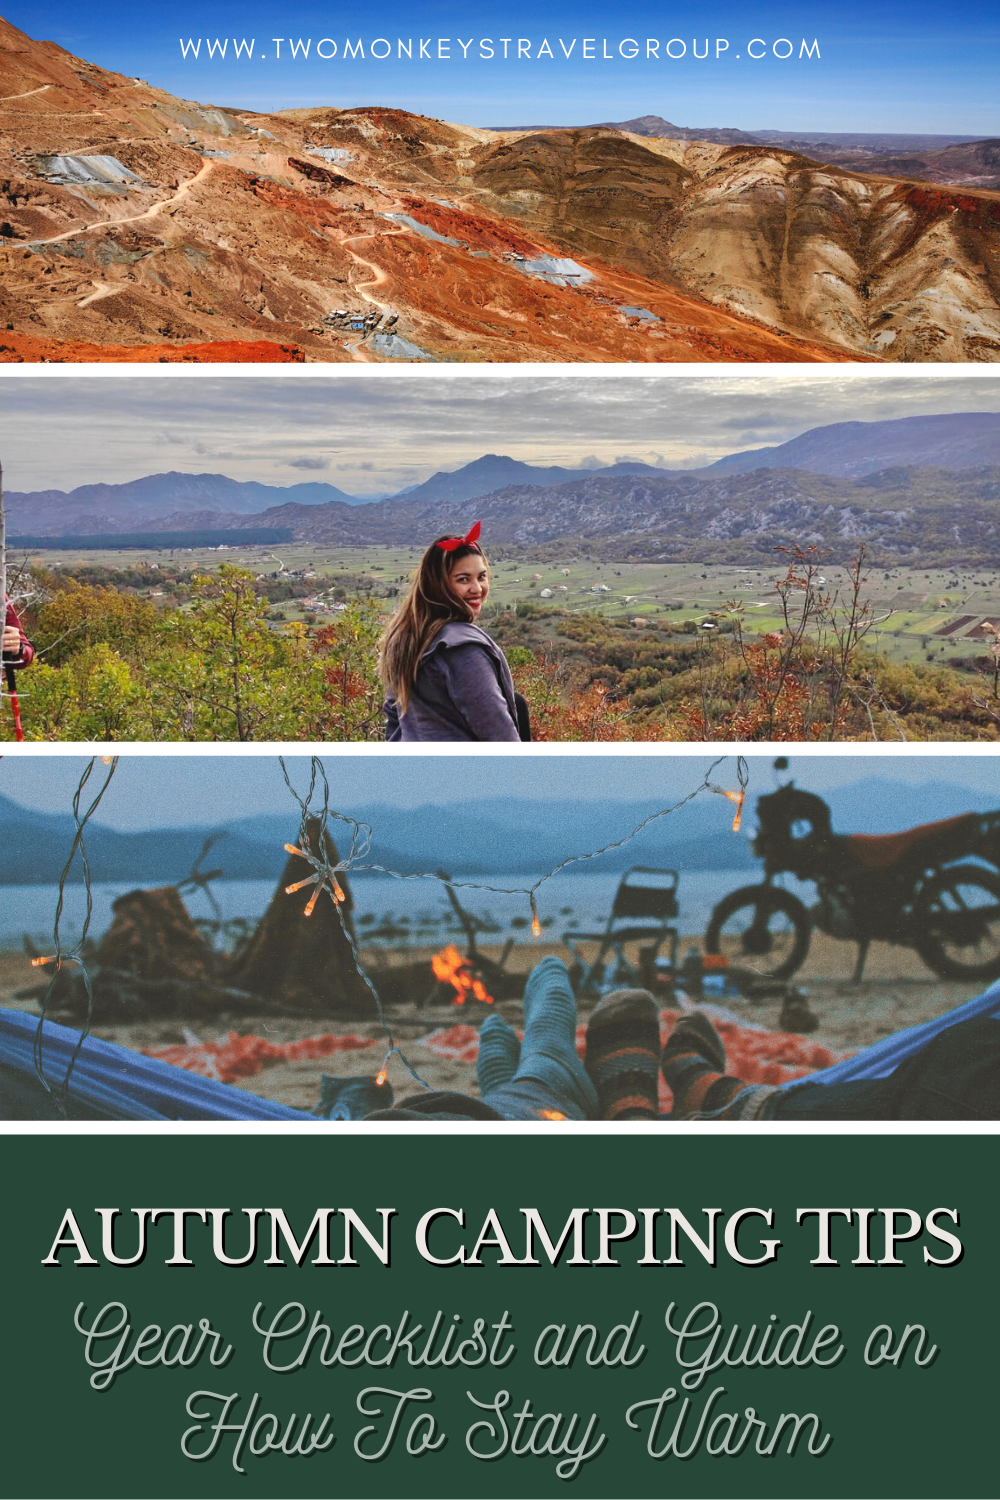 Autumn Camping Tips Gear Checklist and Guide on How To Stay Warm During This Season